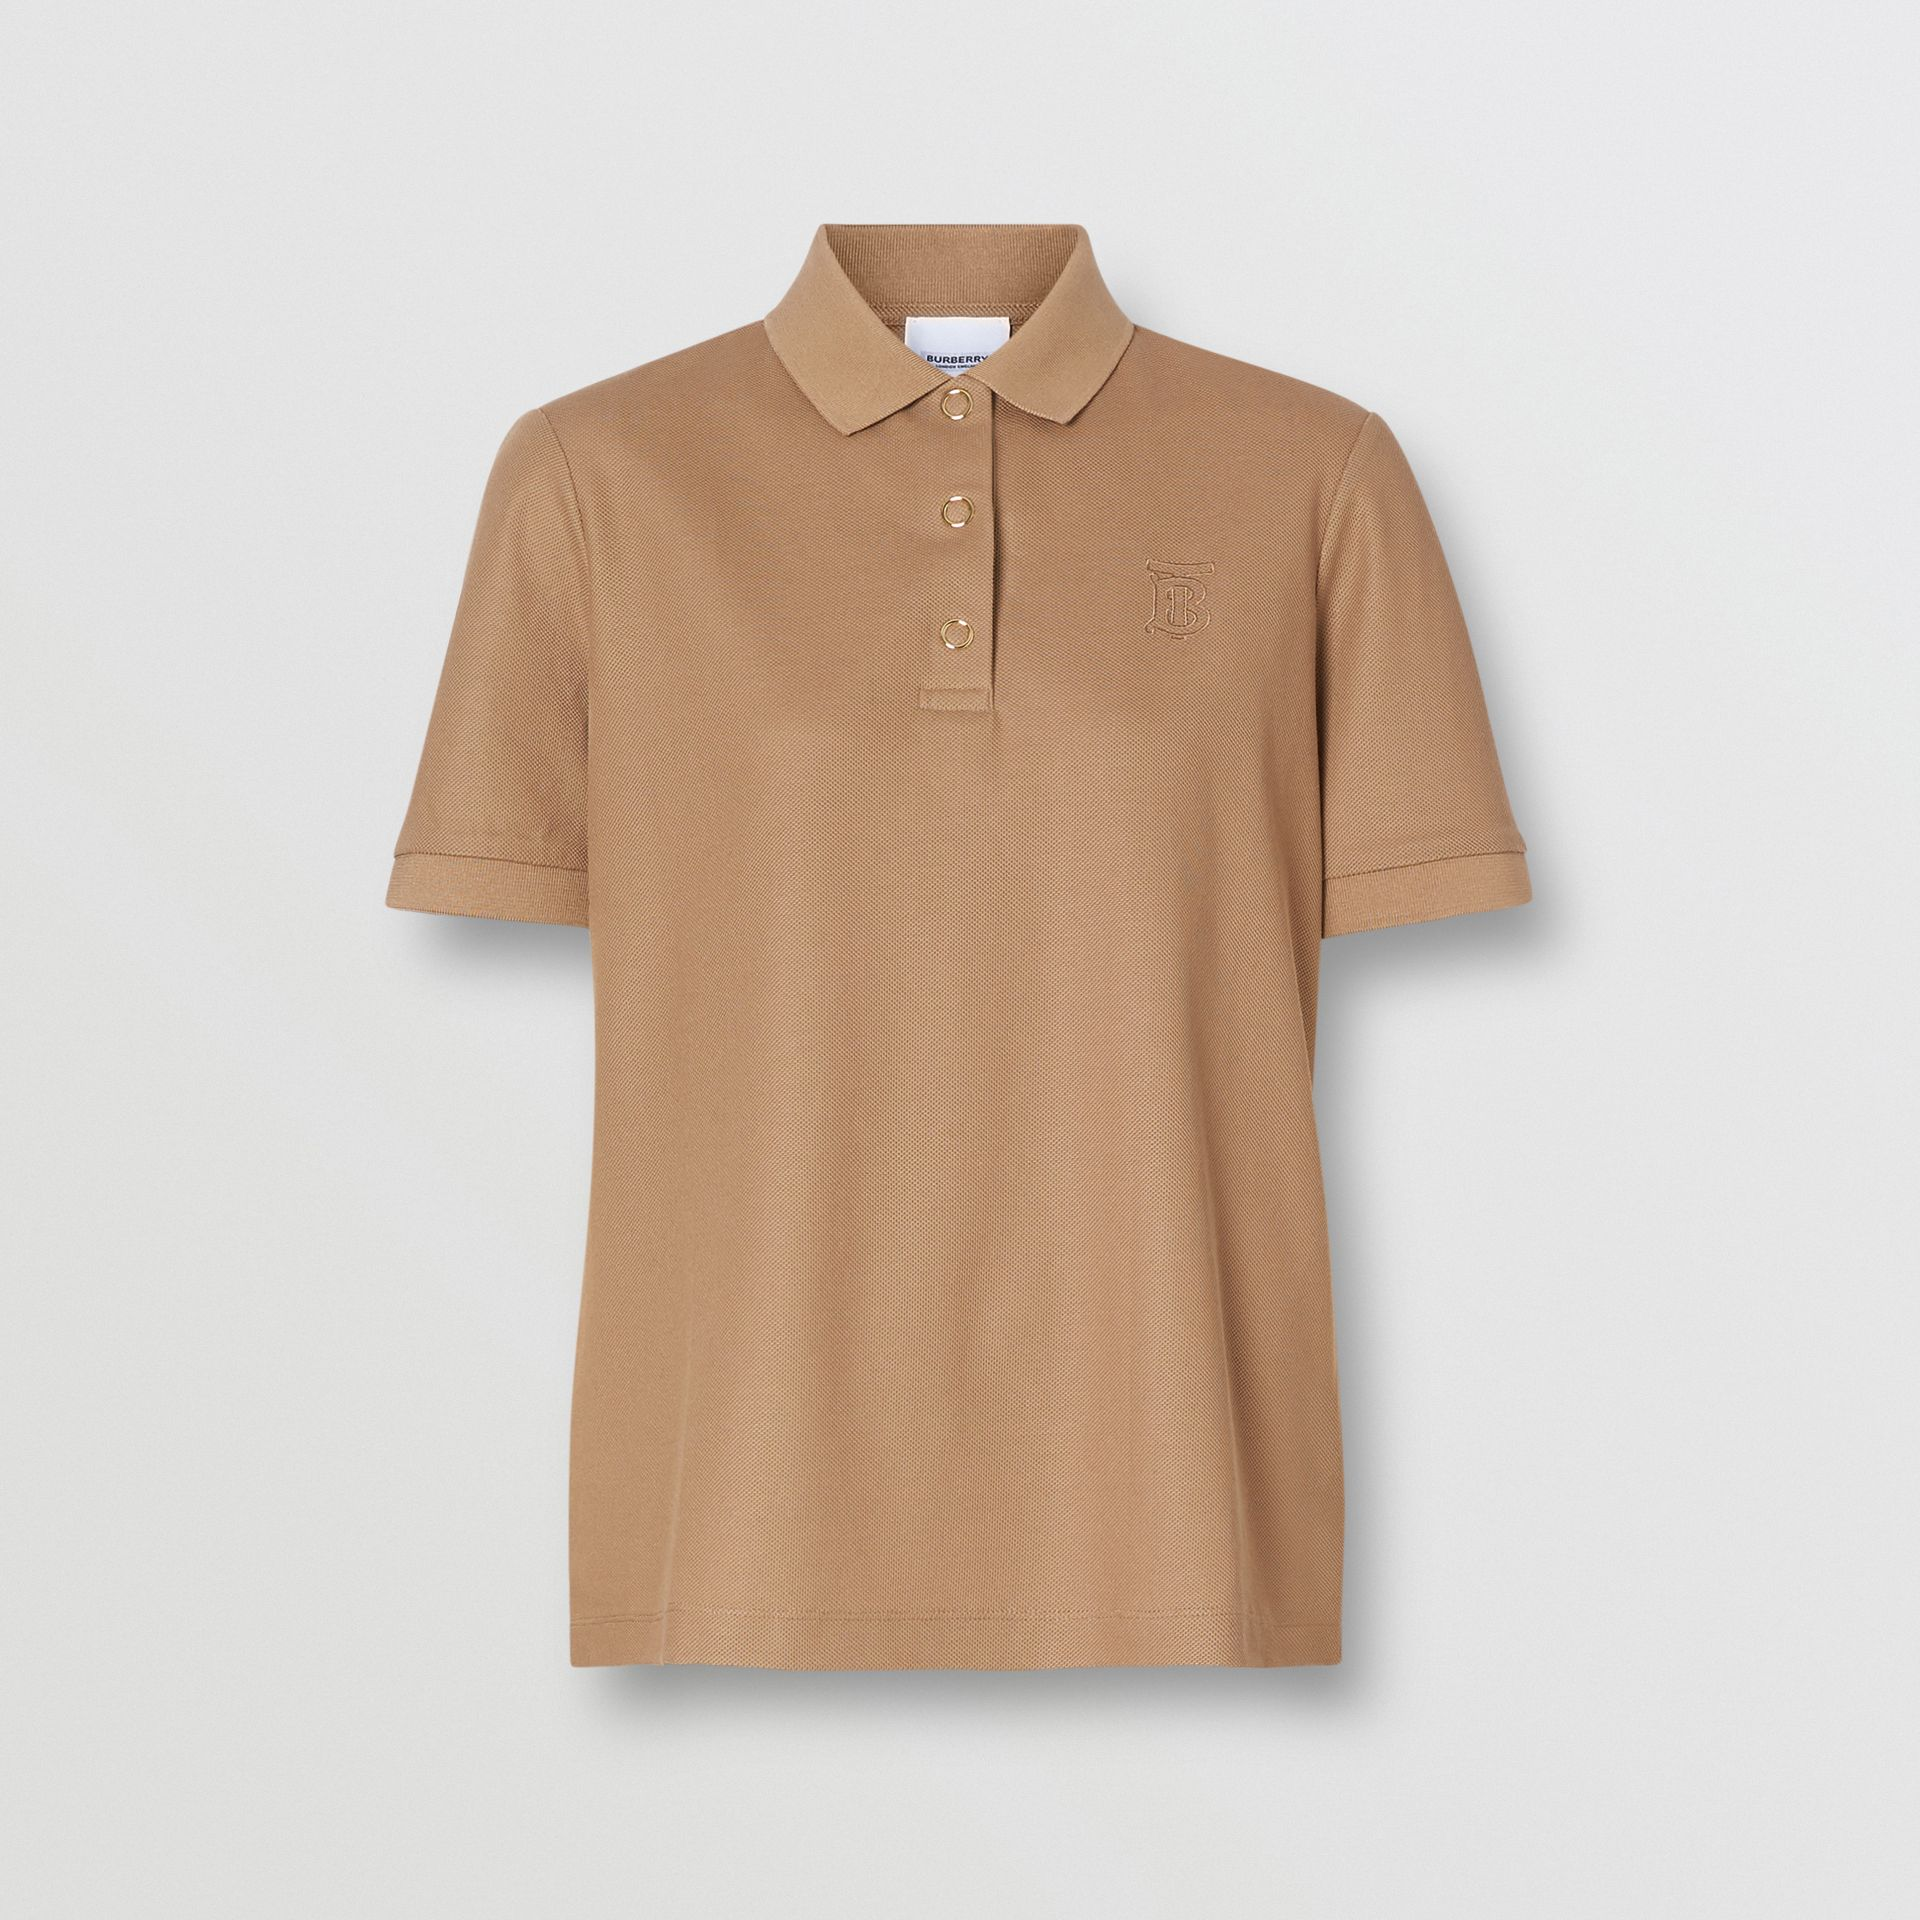 Monogram Motif Cotton Piqué Polo Shirt in Camel - Women | Burberry United States - gallery image 3